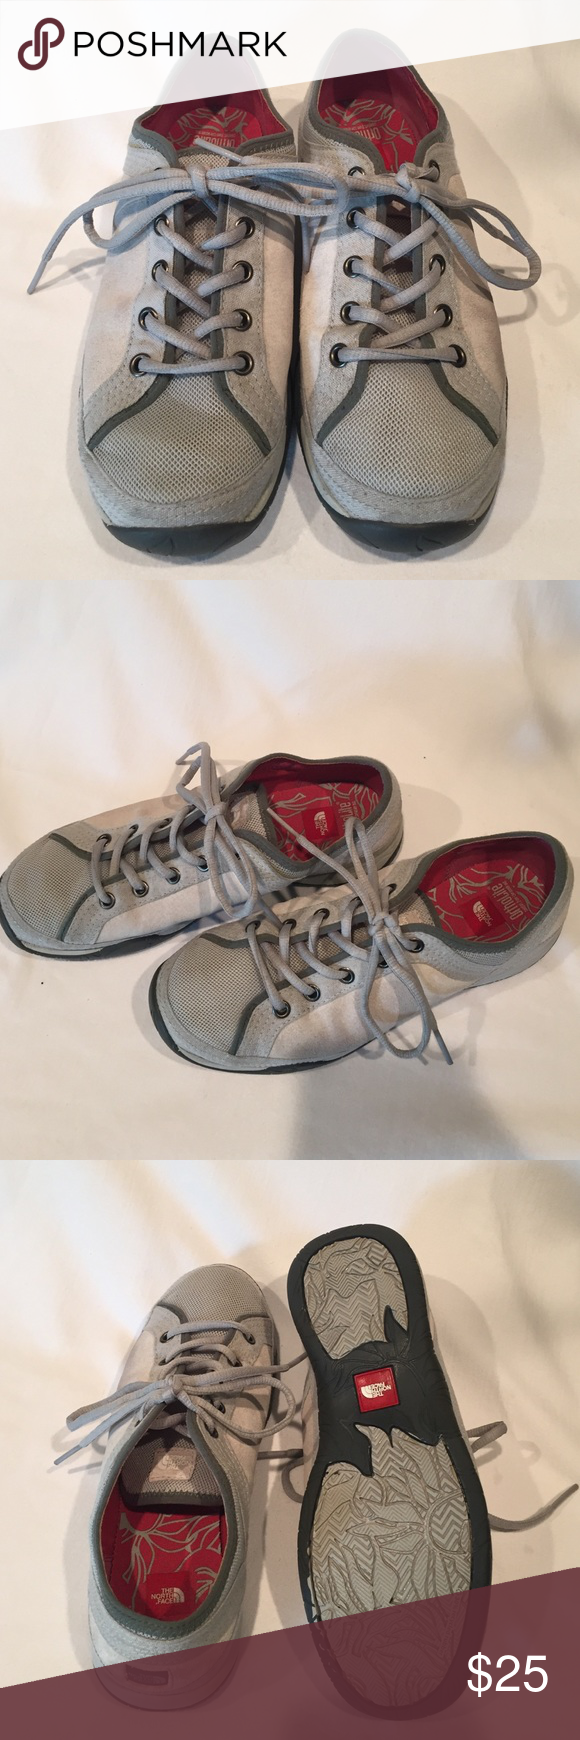 The North Face casual shoes The North Face casual shoes, mesh, suede and fabric. Light grey in color. Slightly used. Shows minimal wear. The North Face Shoes Sneakers